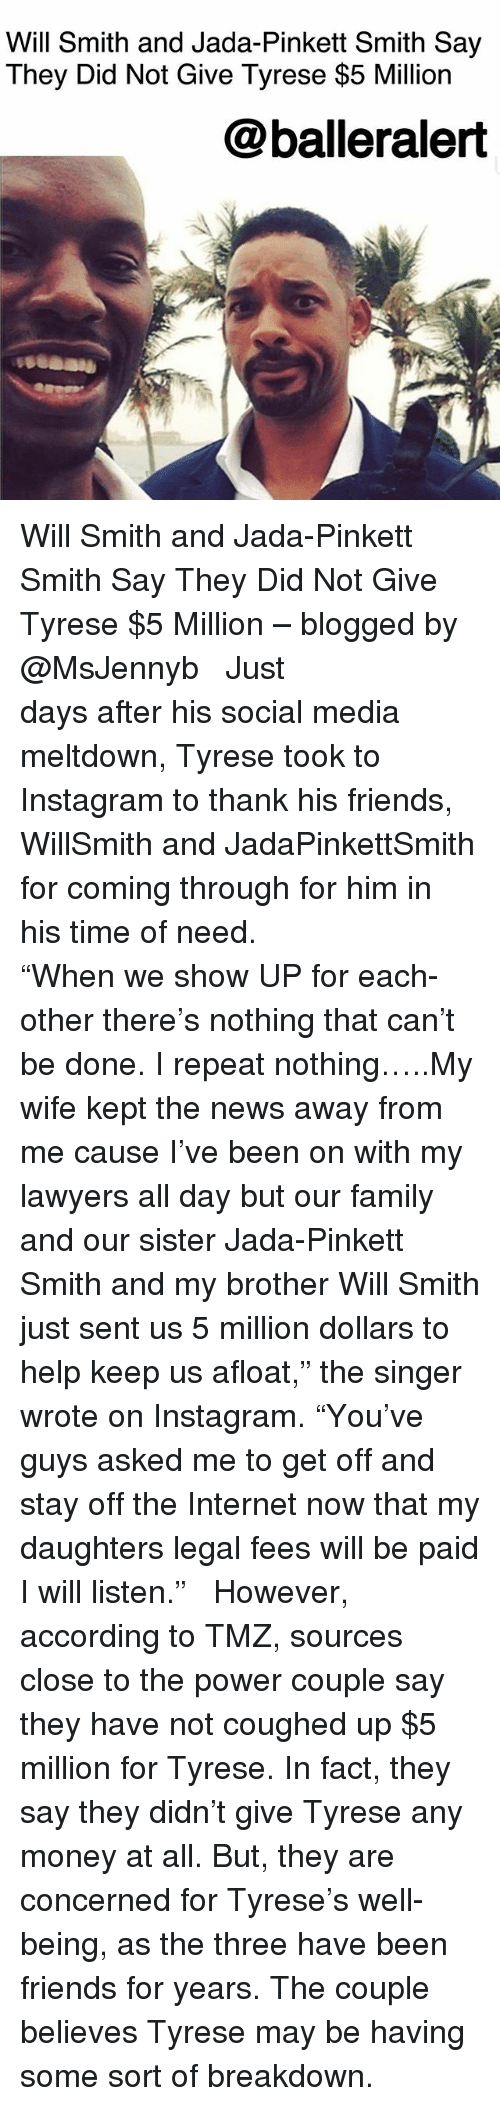 """Family, Friends, and Instagram: Will Smith and Jada-Pinkett Smith Say  They Did Not Give Tyrese $5 Million  @balleralert Will Smith and Jada-Pinkett Smith Say They Did Not Give Tyrese $5 Million – blogged by @MsJennyb ⠀⠀⠀⠀⠀⠀⠀ ⠀⠀⠀⠀⠀⠀⠀ Just days after his social media meltdown, Tyrese took to Instagram to thank his friends, WillSmith and JadaPinkettSmith for coming through for him in his time of need. ⠀⠀⠀⠀⠀⠀⠀⠀⠀⠀⠀⠀⠀⠀ ⠀⠀⠀⠀⠀⠀⠀ """"When we show UP for each-other there's nothing that can't be done. I repeat nothing…..My wife kept the news away from me cause I've been on with my lawyers all day but our family and our sister Jada-Pinkett Smith and my brother Will Smith just sent us 5 million dollars to help keep us afloat,"""" the singer wrote on Instagram. """"You've guys asked me to get off and stay off the Internet now that my daughters legal fees will be paid I will listen."""" ⠀⠀⠀⠀⠀⠀⠀ ⠀⠀⠀⠀⠀⠀⠀ However, according to TMZ, sources close to the power couple say they have not coughed up $5 million for Tyrese. In fact, they say they didn't give Tyrese any money at all. But, they are concerned for Tyrese's well-being, as the three have been friends for years. The couple believes Tyrese may be having some sort of breakdown."""